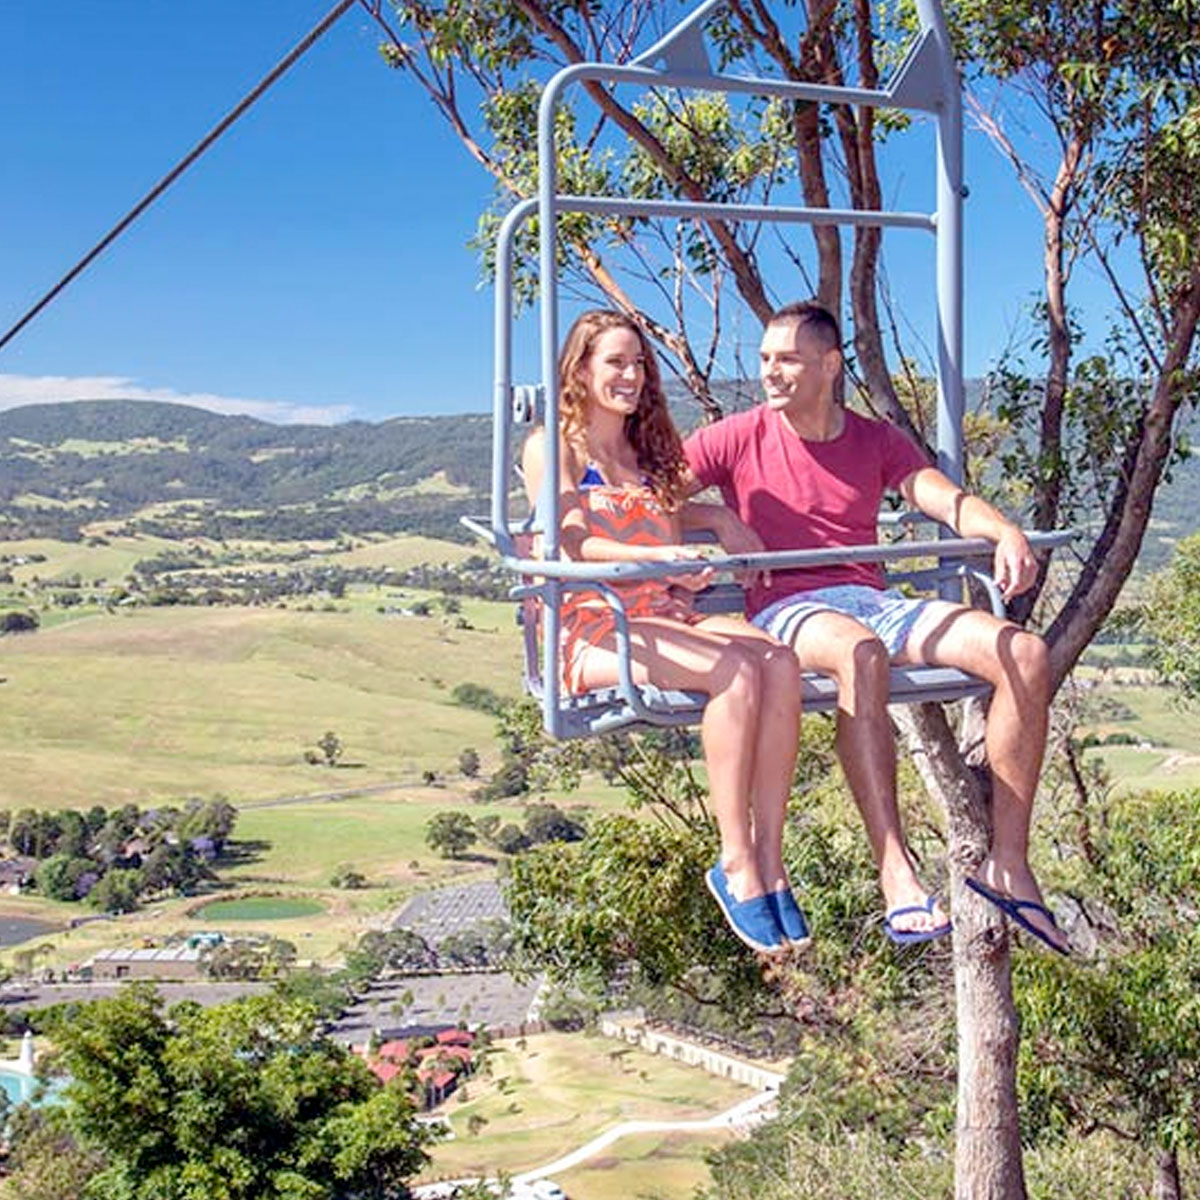 rides-chairlift-2